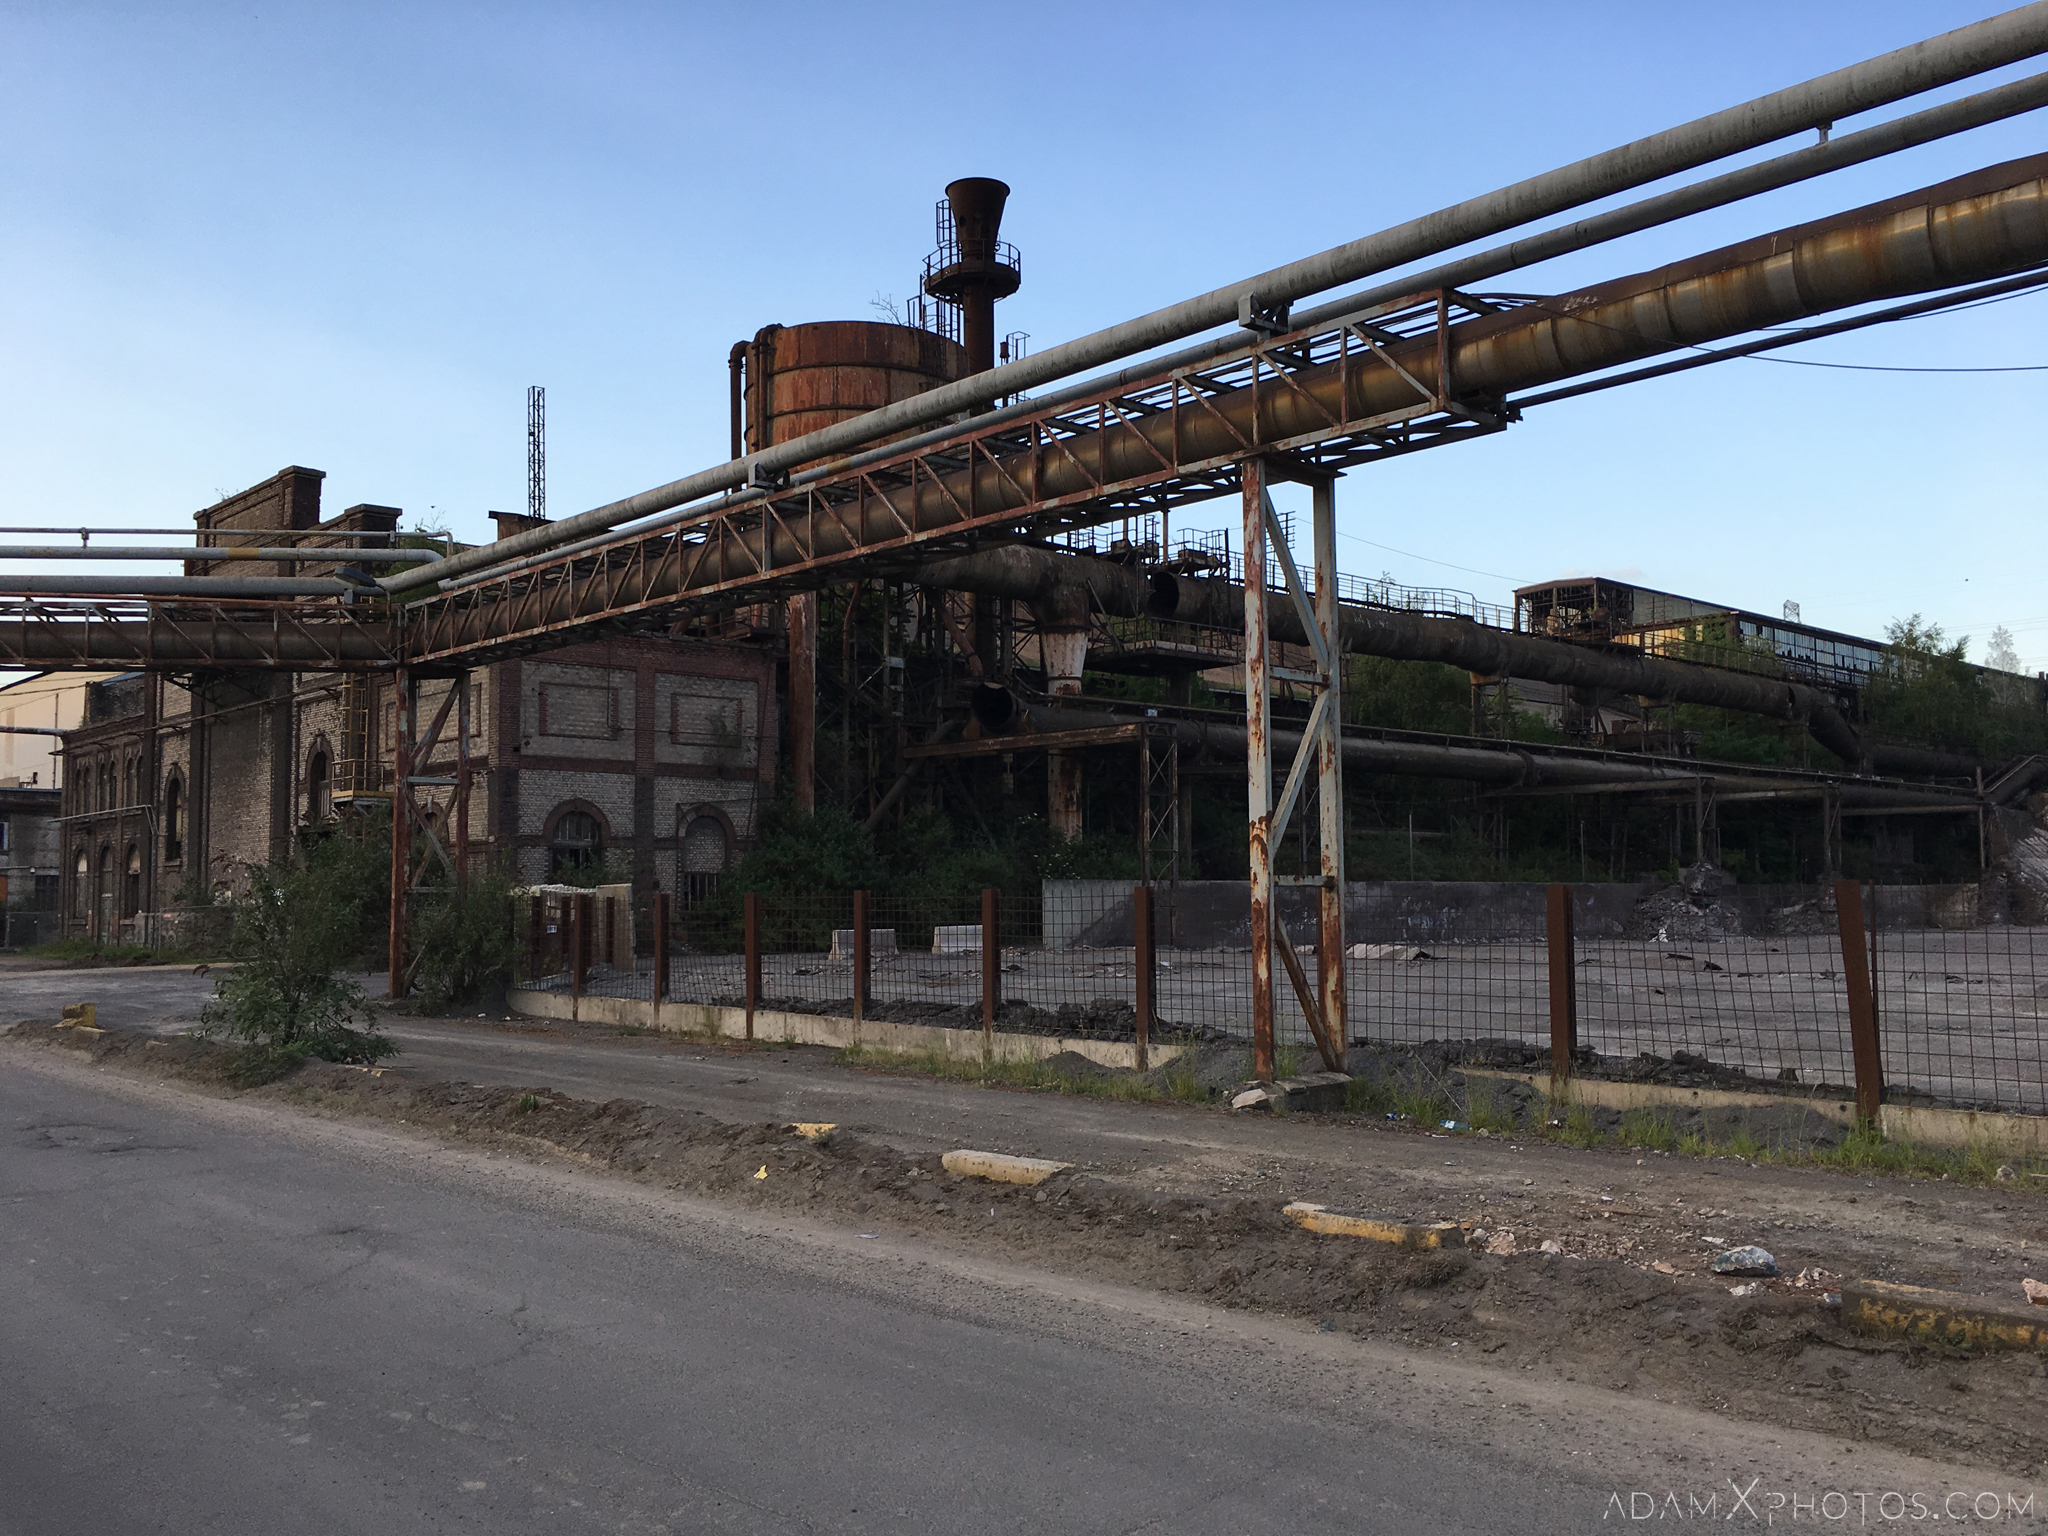 Exterior external outside Desk panels Control Room S Dusty Rusty Steelworks Adam X Urban Exploration Belgium Access 2017 Abandoned decay lost forgotten derelict location creepy haunting eerie